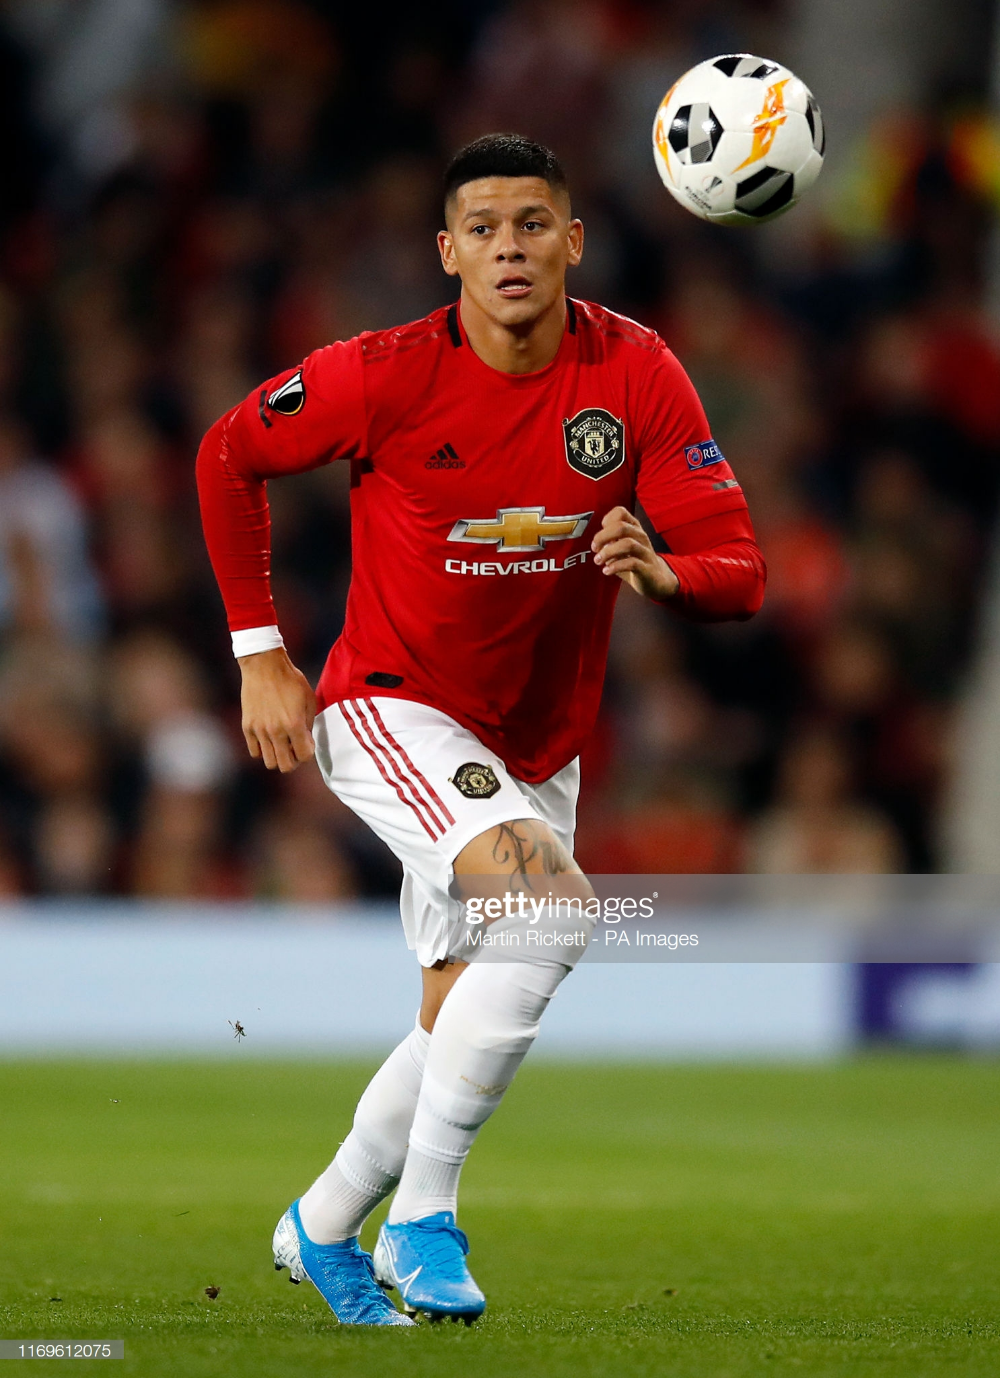 Manchester United S Marcos Rojo During The Uefa Europa League Group L Manchester United Manchester United Football Club Manchester